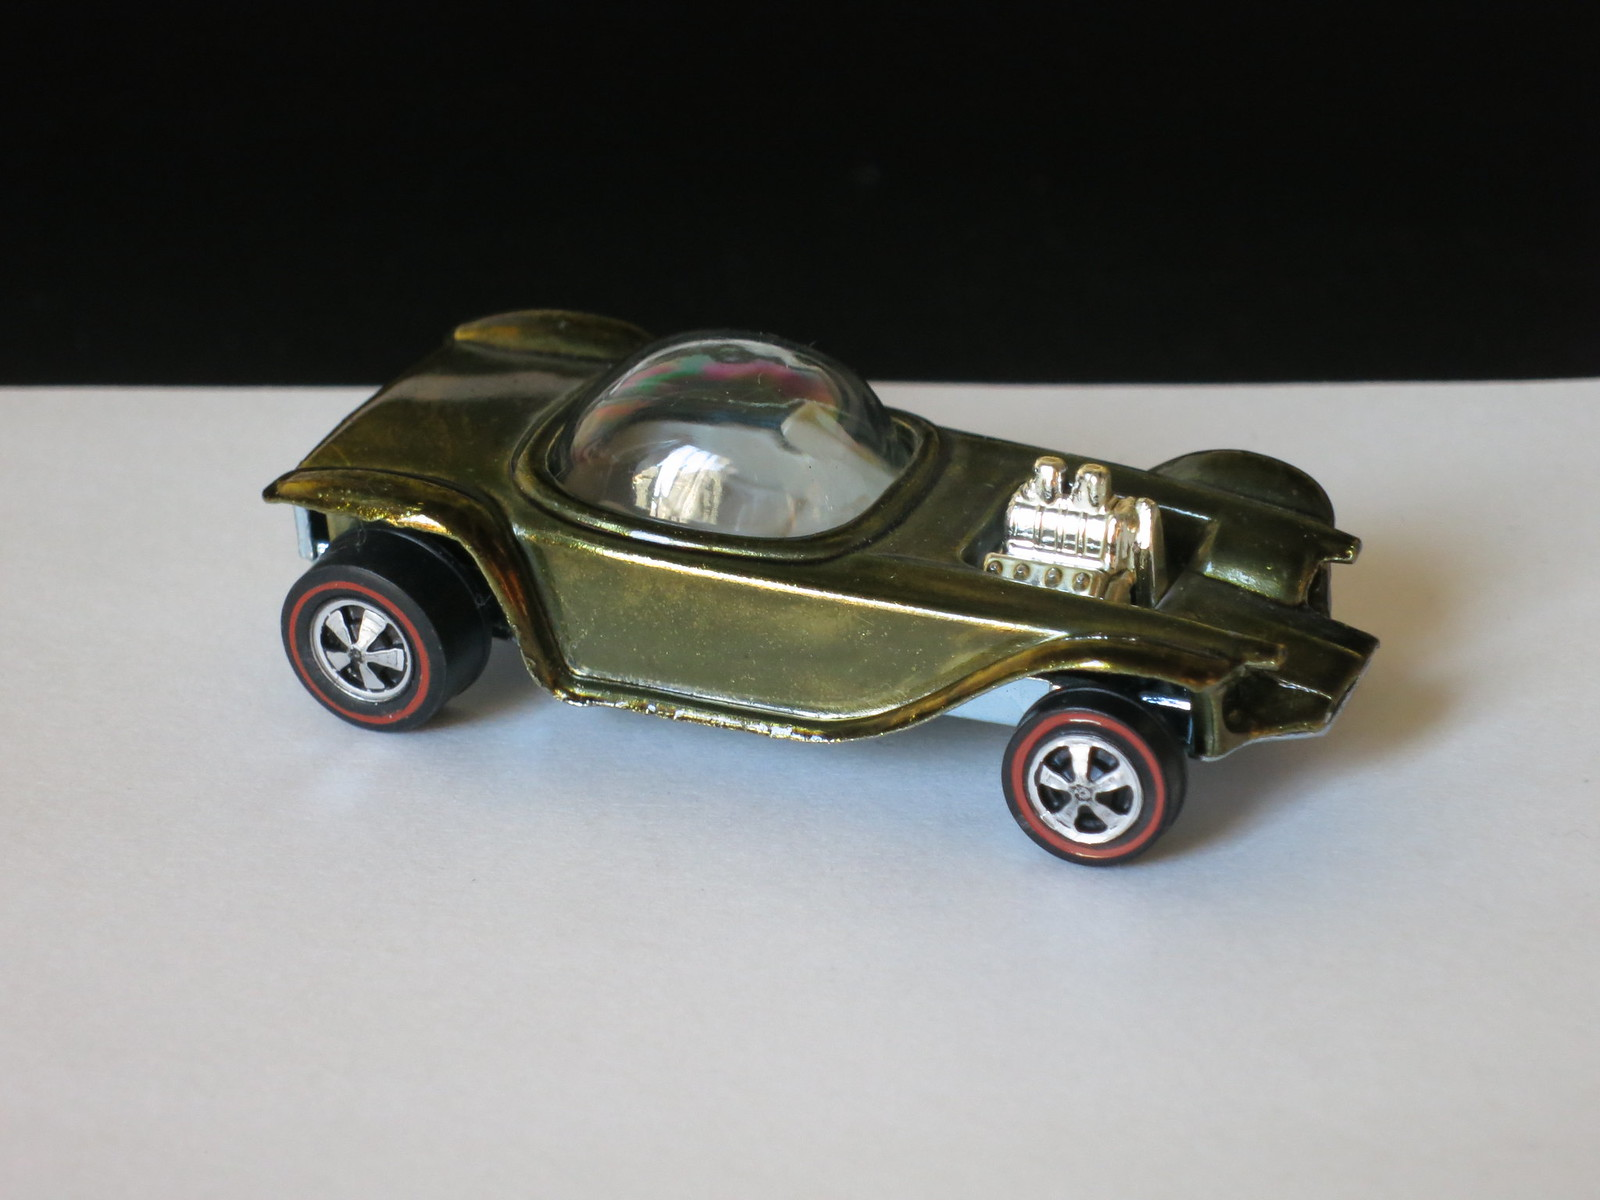 Hot Wheels Redline Olive Beanik Bandit US